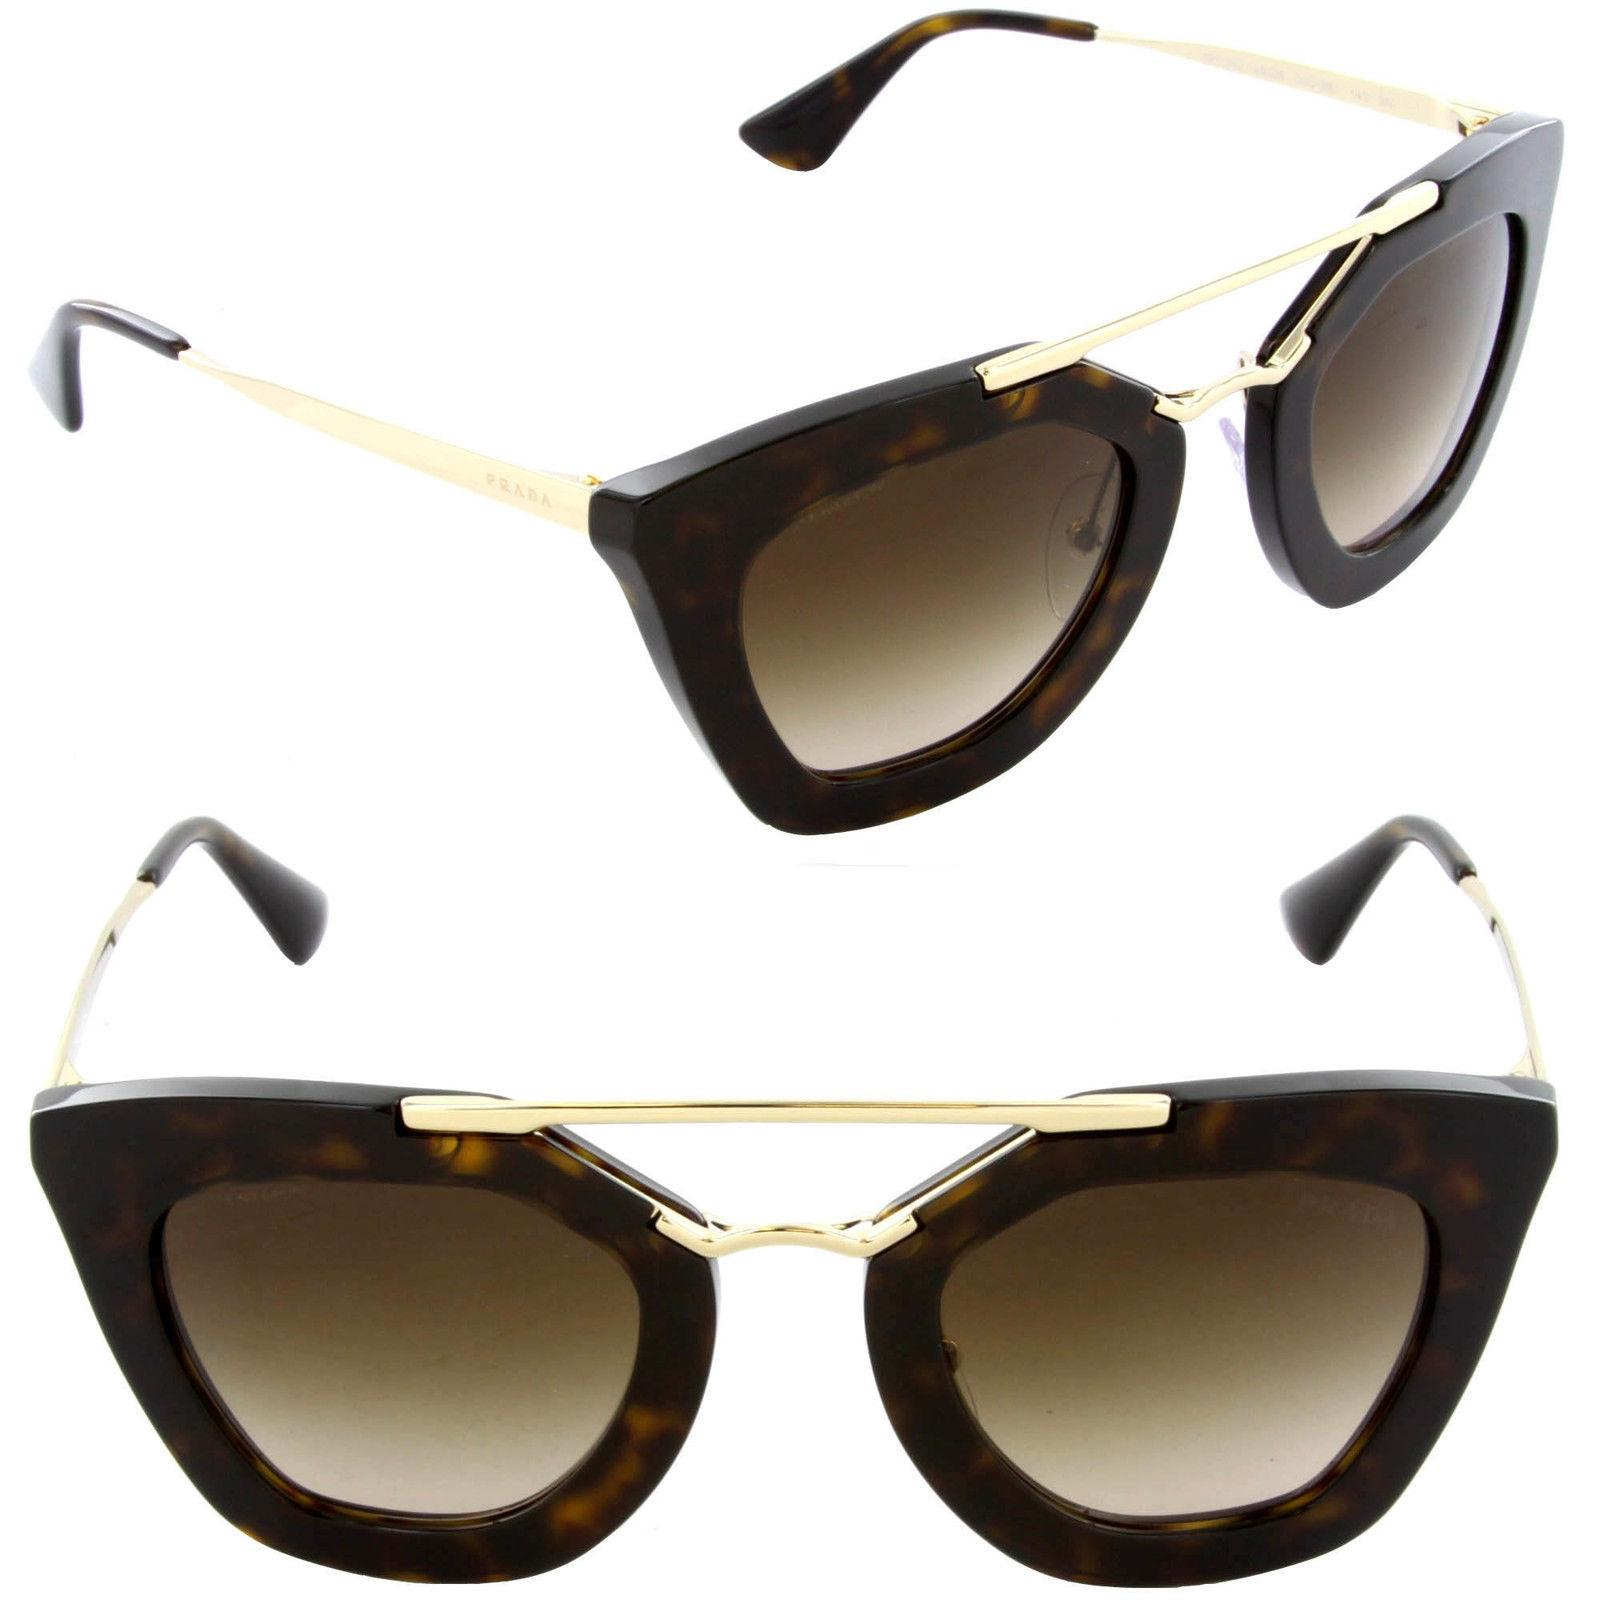 0d8a2b1b79 uk as new prada sunglasses womens black trade me 8f63f 6f724  order prada  09q 09qs 2au 6s1 havana sunglasses tradesy d6315 1d07d